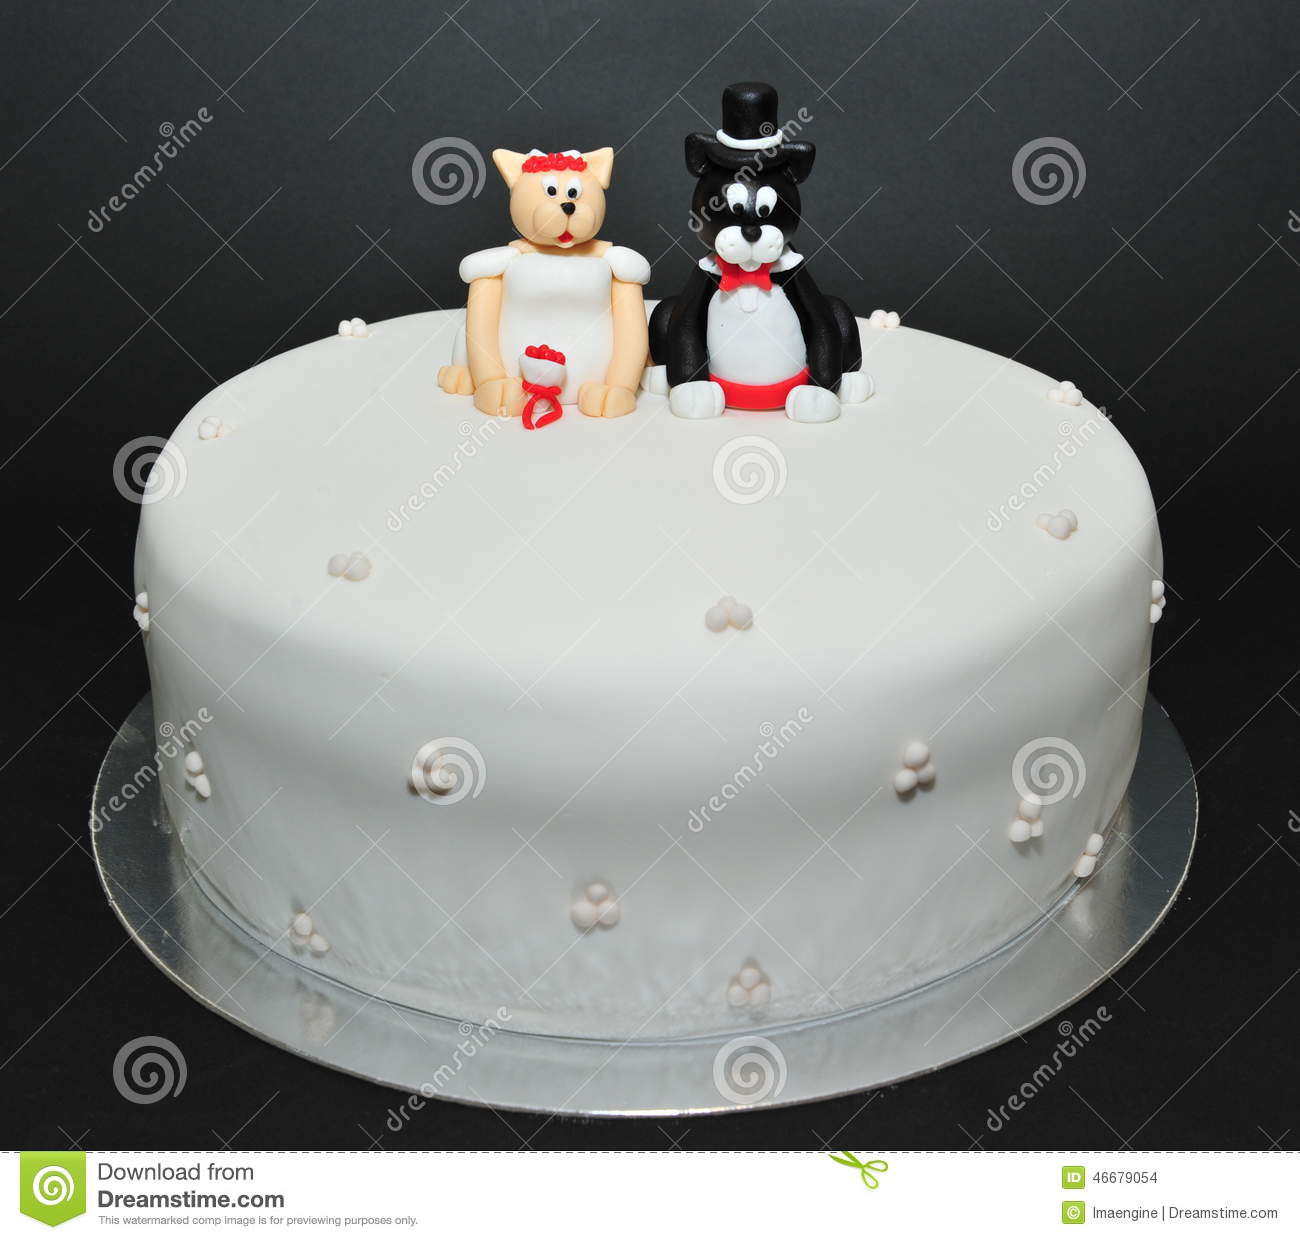 Wedding theme fondant cake stock photo. Image of celebrate - 46679054